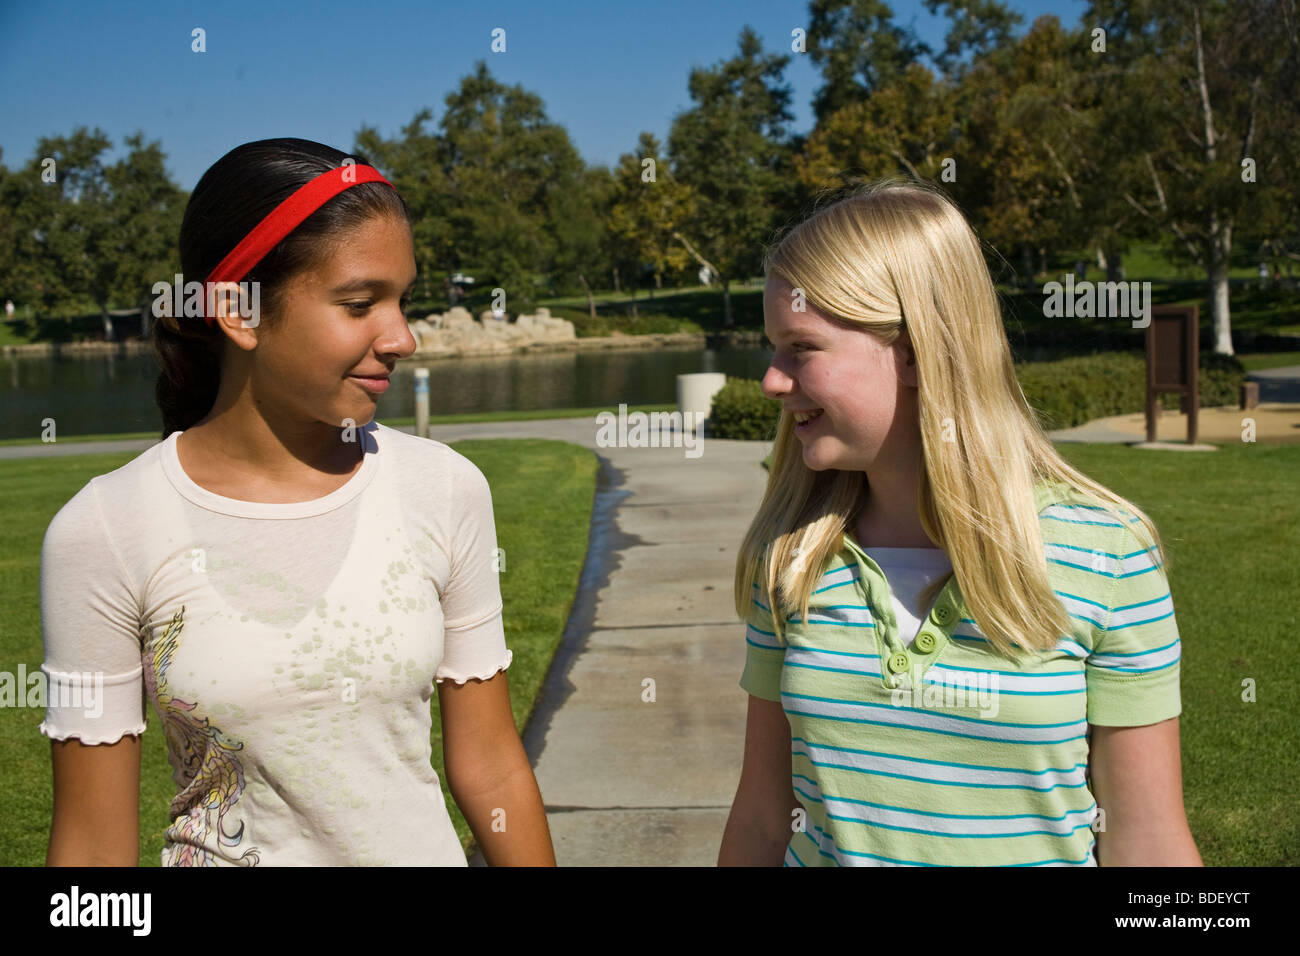 Two girls hang hanging out together.Hispanic and Caucasian junior high girls walking in the park. MR - Stock Image